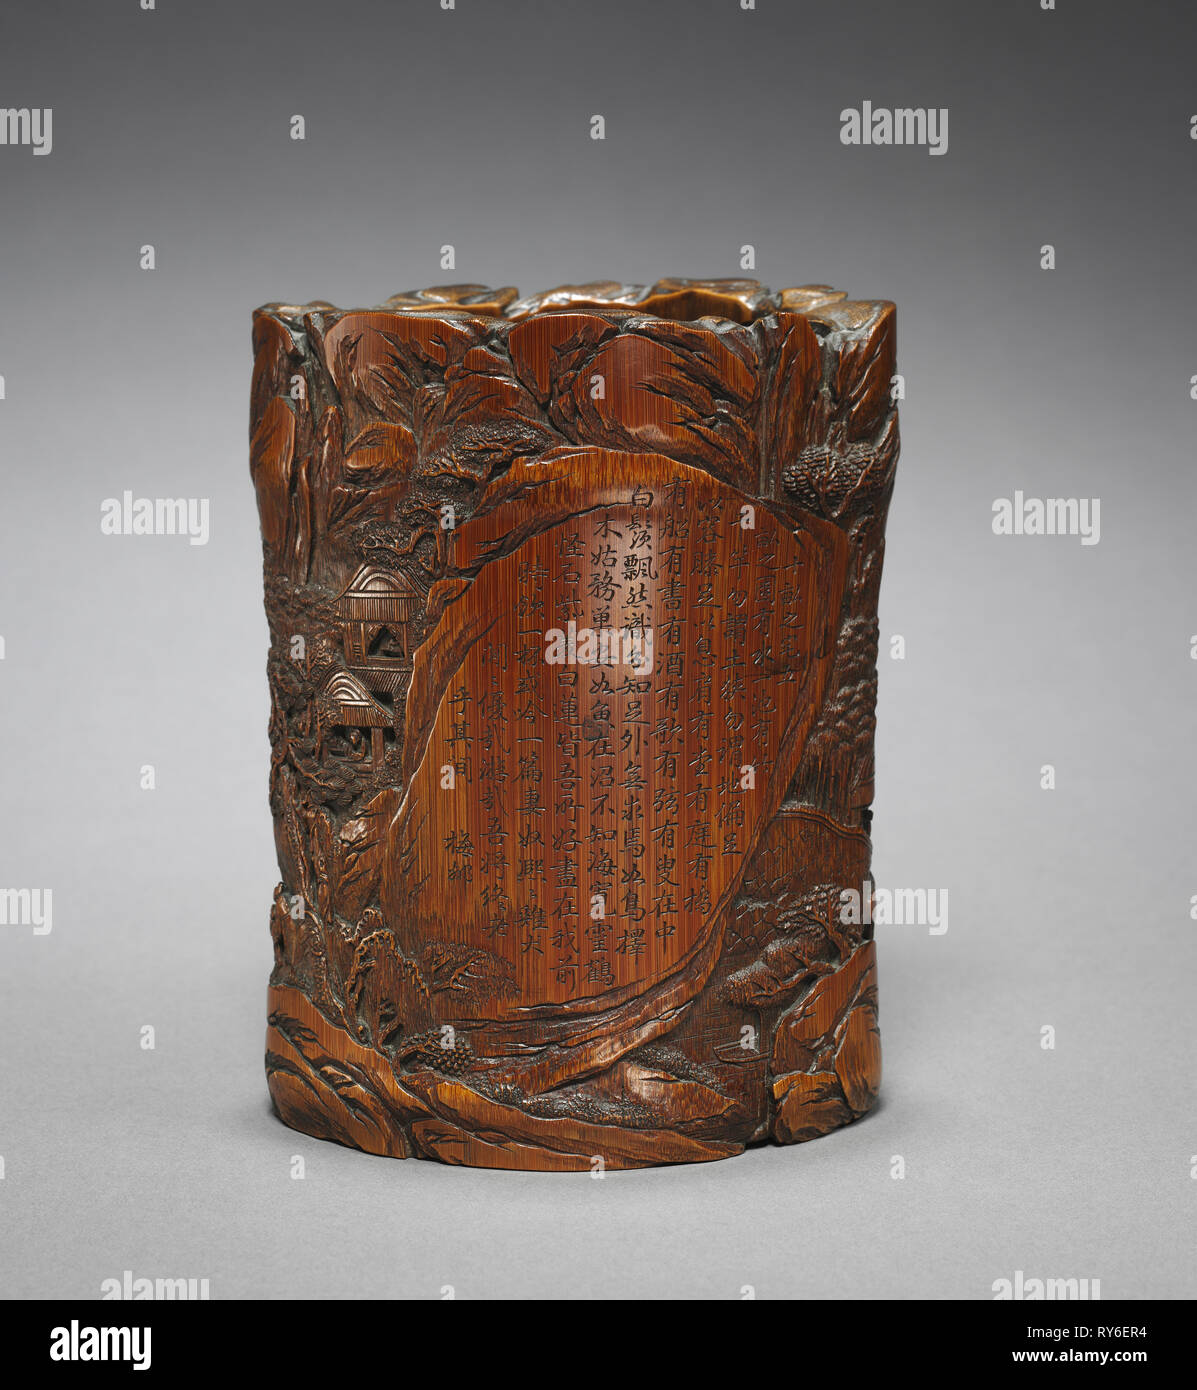 Brush Holder with Figures in Landscape and Poetic Inscription, 1700s. China, Qing dynasty (1644-1911). Carved bamboo; overall: 16 x 12.4 cm (6 5/16 x 4 7/8 in - Stock Image